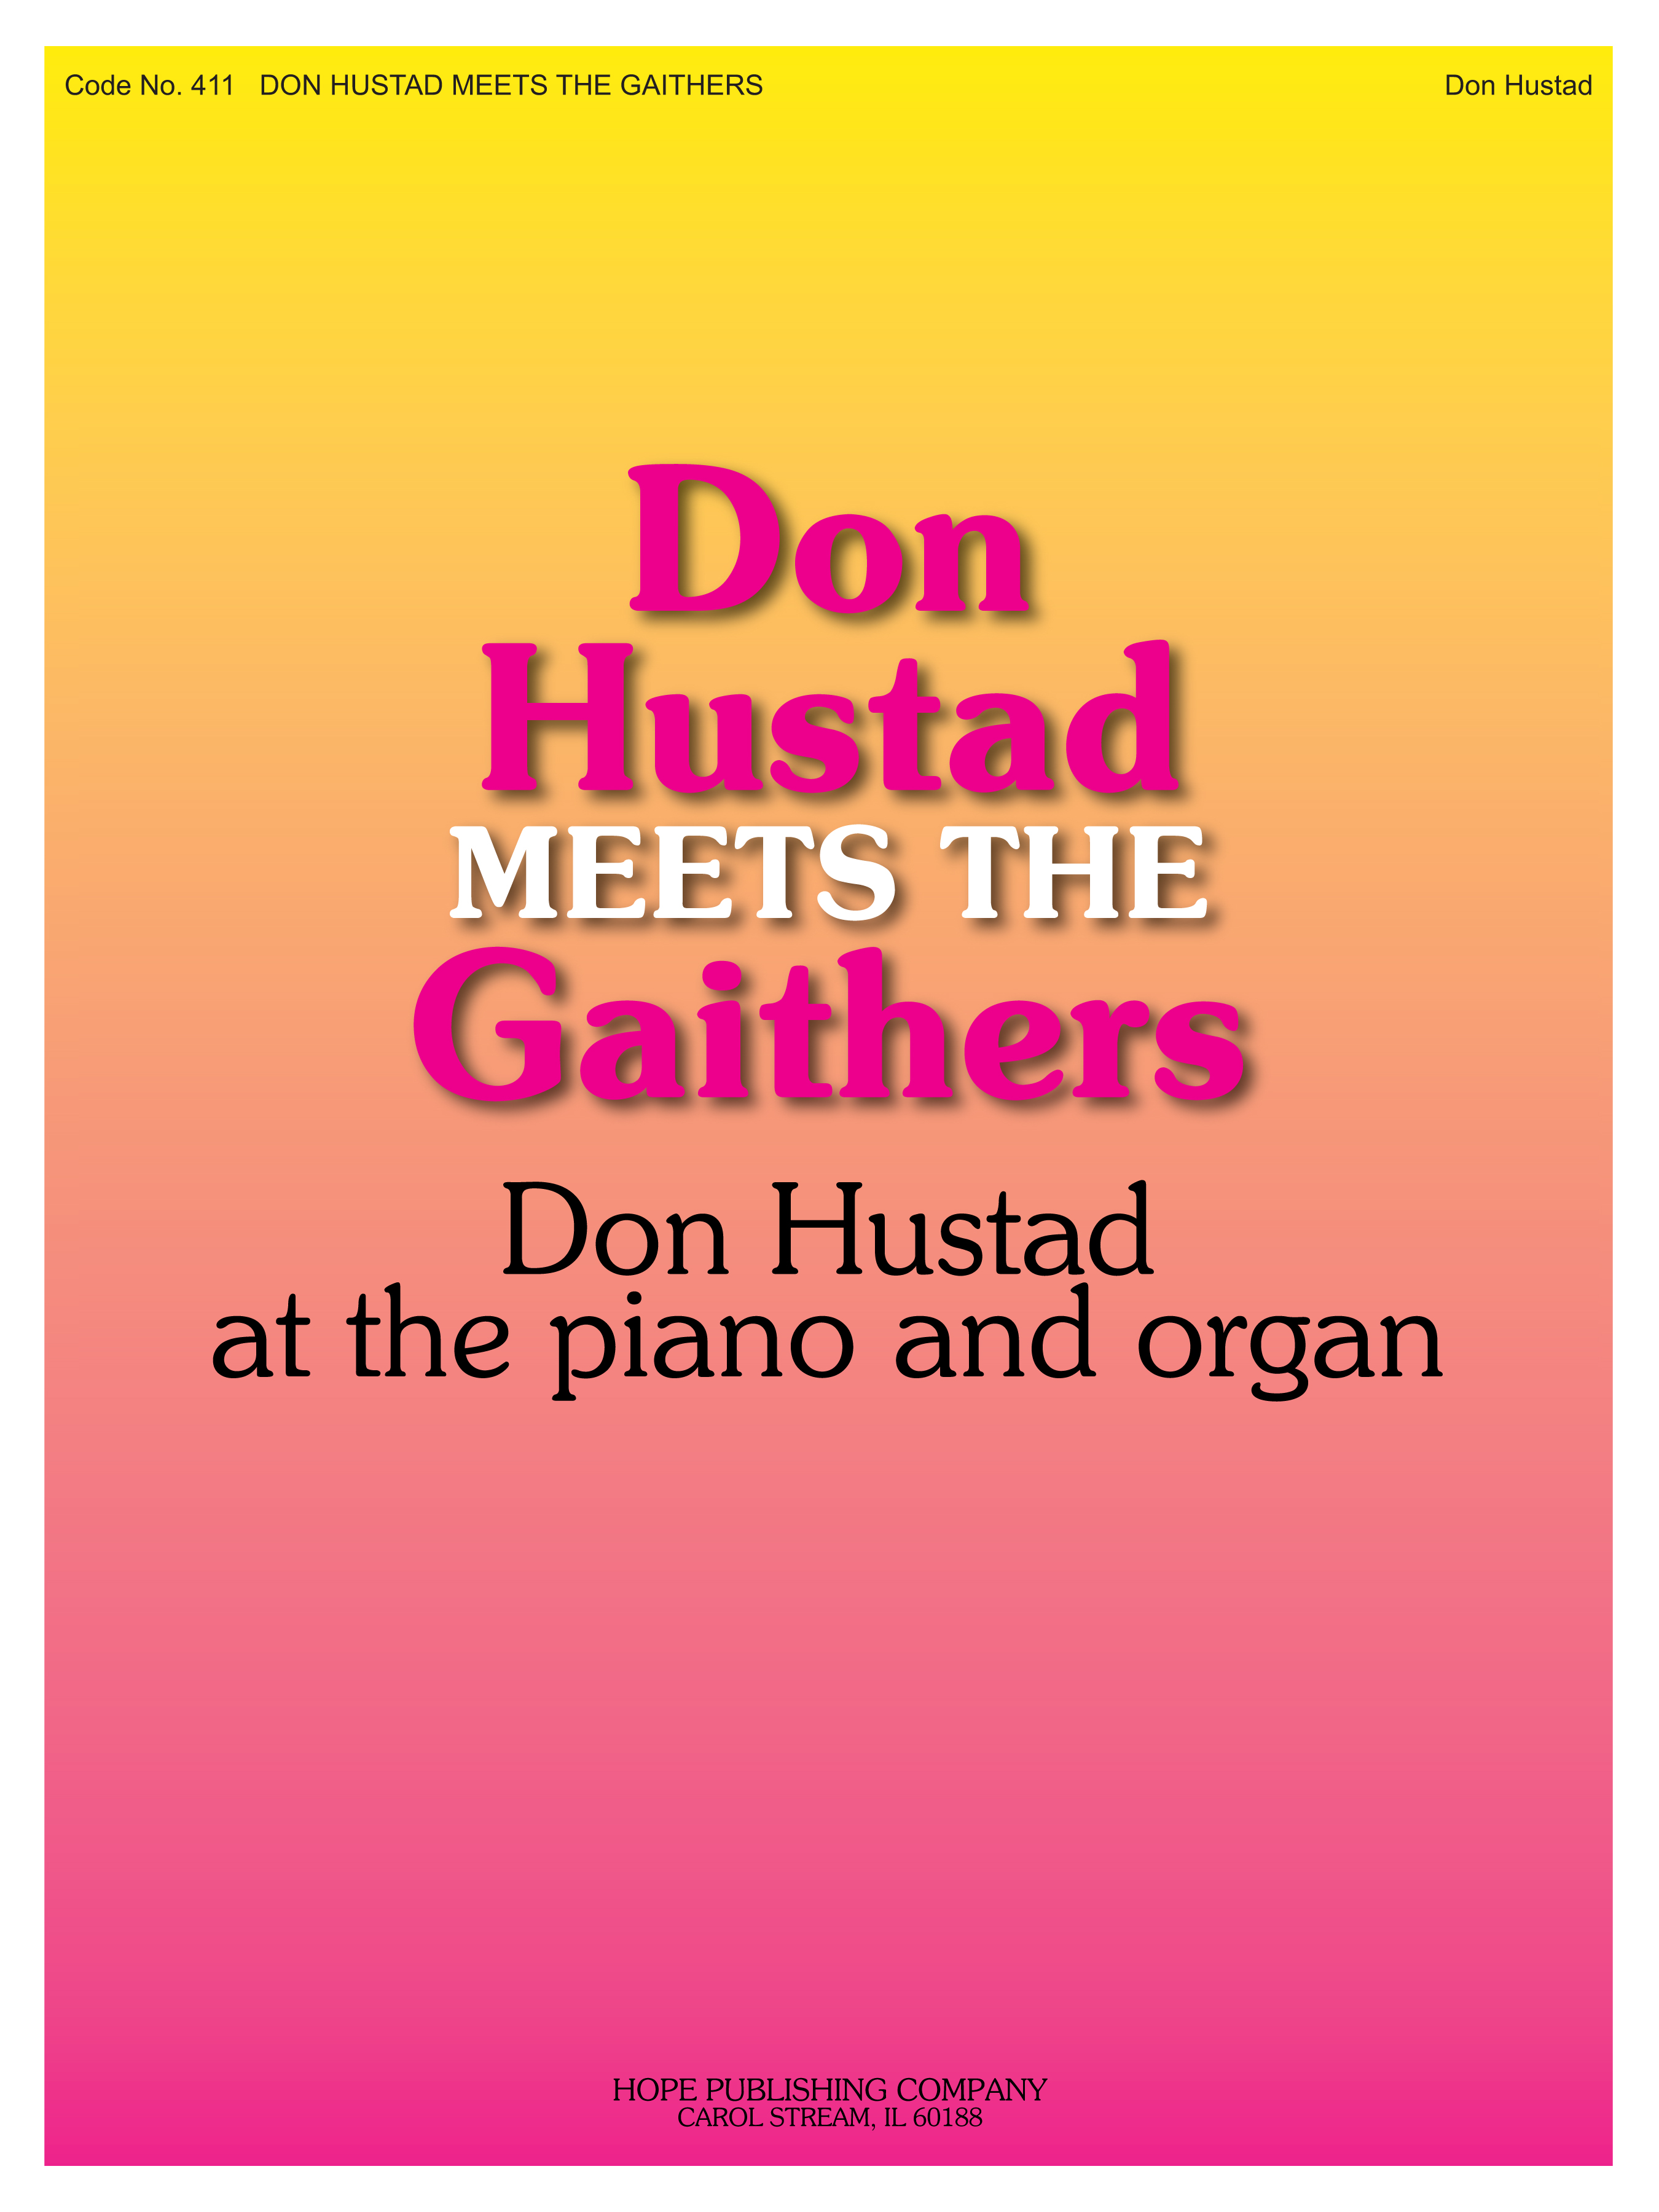 Don Hustad Meets the Gaithers Cover Image